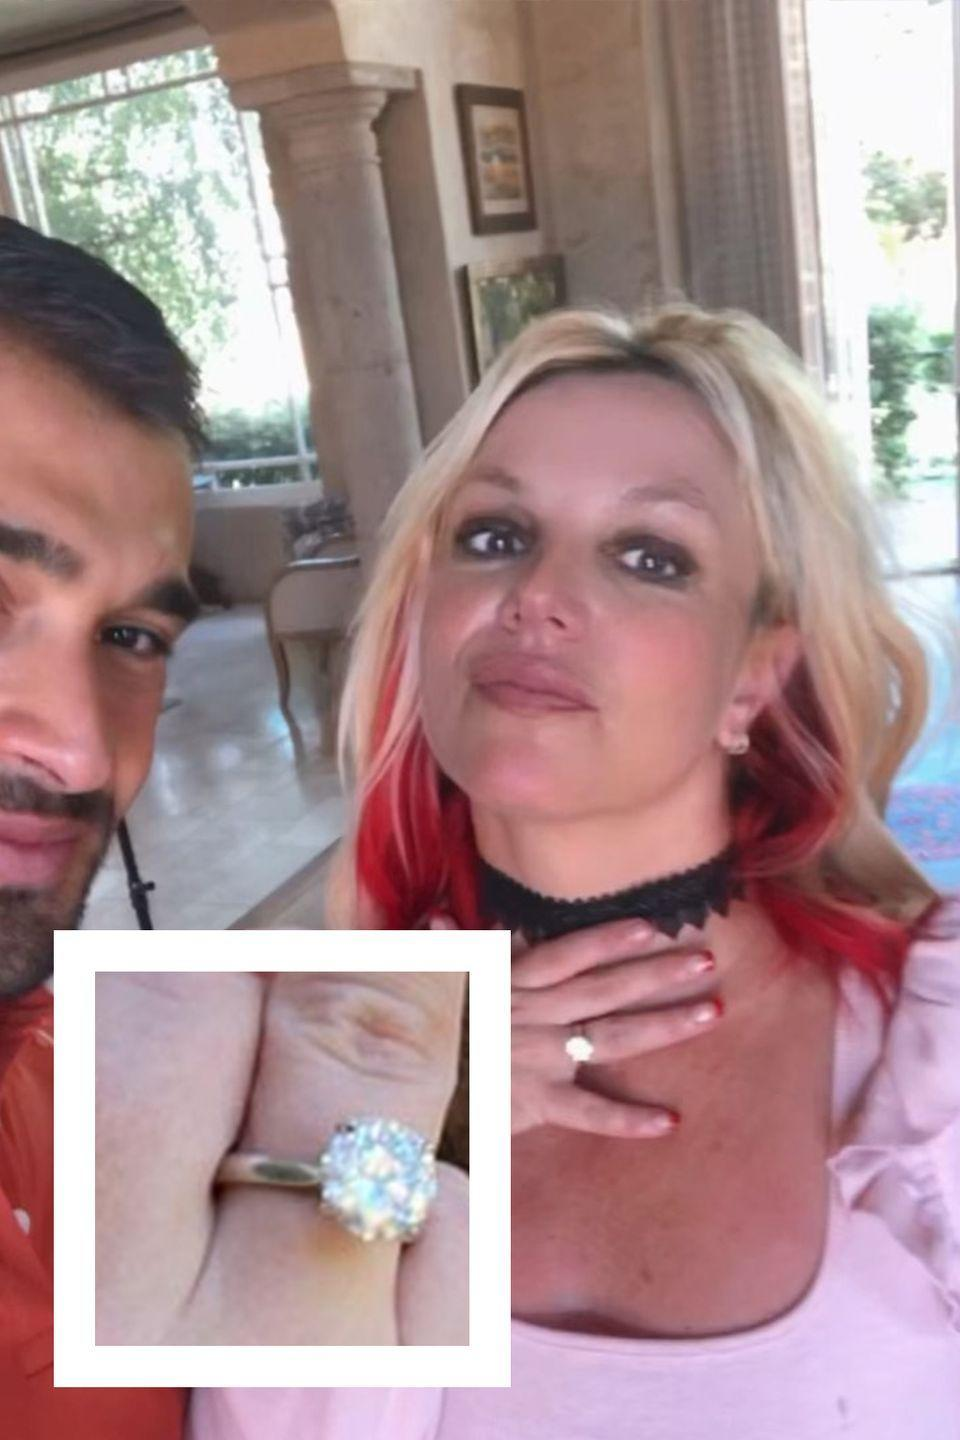 """<p>On September 12, 2021, Britney Spears shared the news of her engagement to longtime boyfriend, Sam Ashgari. The pop star <a href=""""https://www.instagram.com/p/CTvOjVsMPJe/"""" rel=""""nofollow noopener"""" target=""""_blank"""" data-ylk=""""slk:posted a sweet video"""" class=""""link rapid-noclick-resp"""">posted a sweet video</a> of herself and Ashgari, who is an actor and fitness trainer, with an enthusiastic """"I can't fucking believe it 💍💍💍💍💍💍❣️!!!!!!"""" as the caption. The ring, by Forever Diamonds NY, is a custom four-carat, round-cut diamond with a platinum cathedral setting. According to a statement from the jeweler, the inside of the silver band is engraved with the word """"Lioness,"""" Ashgari's nickname for Spears.</p>"""